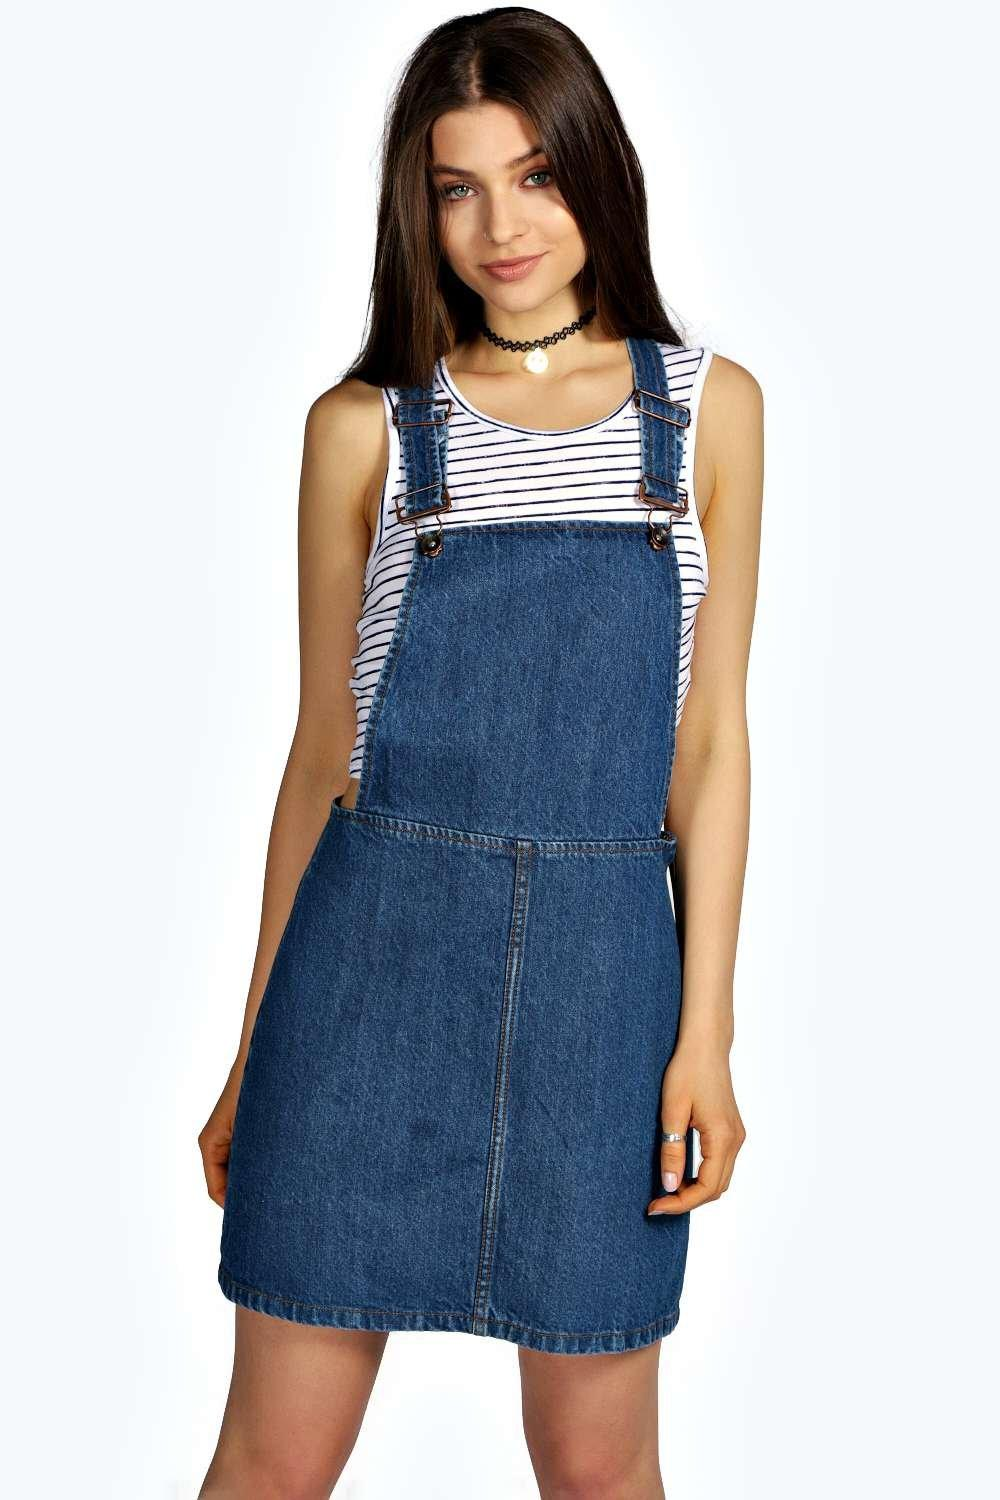 You searched for: dungaree dress. Good news! Etsy has thousands of handcrafted and vintage products that perfectly fit what you're searching for. Discover all the extraordinary items our community of craftspeople have to offer and find the perfect gift for your loved one (or yourself!) today.